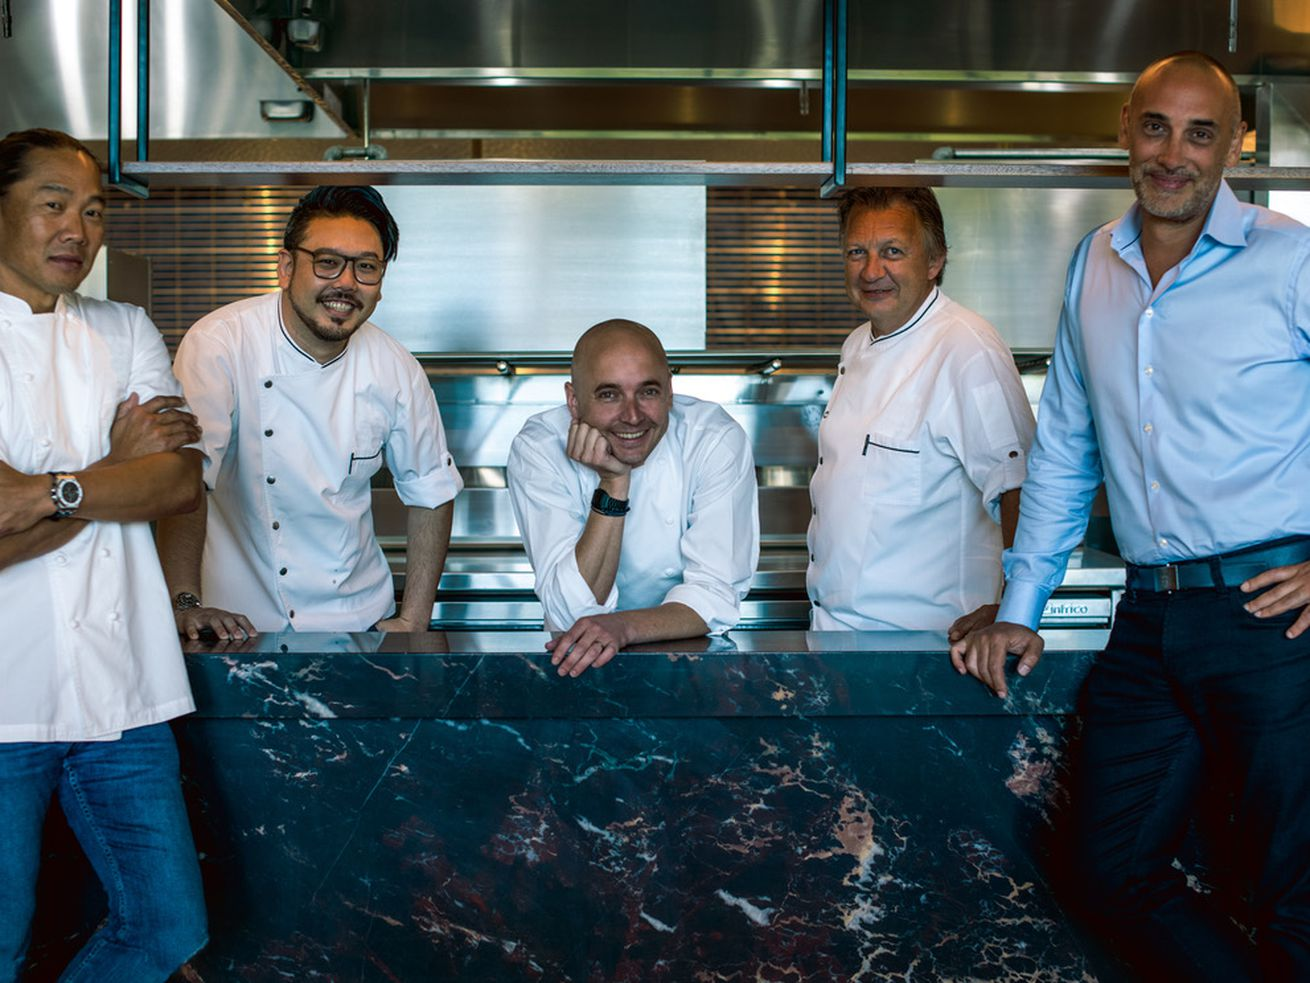 <em>Sunny Oh, Executive Chef-Partner; Kaoru Chang, Corporate Chef; Pierre Morat, Executive Chef; Gregory Gourreau, Corporate Chef Partner; and Tim Sandoz, Director of Operations</em>